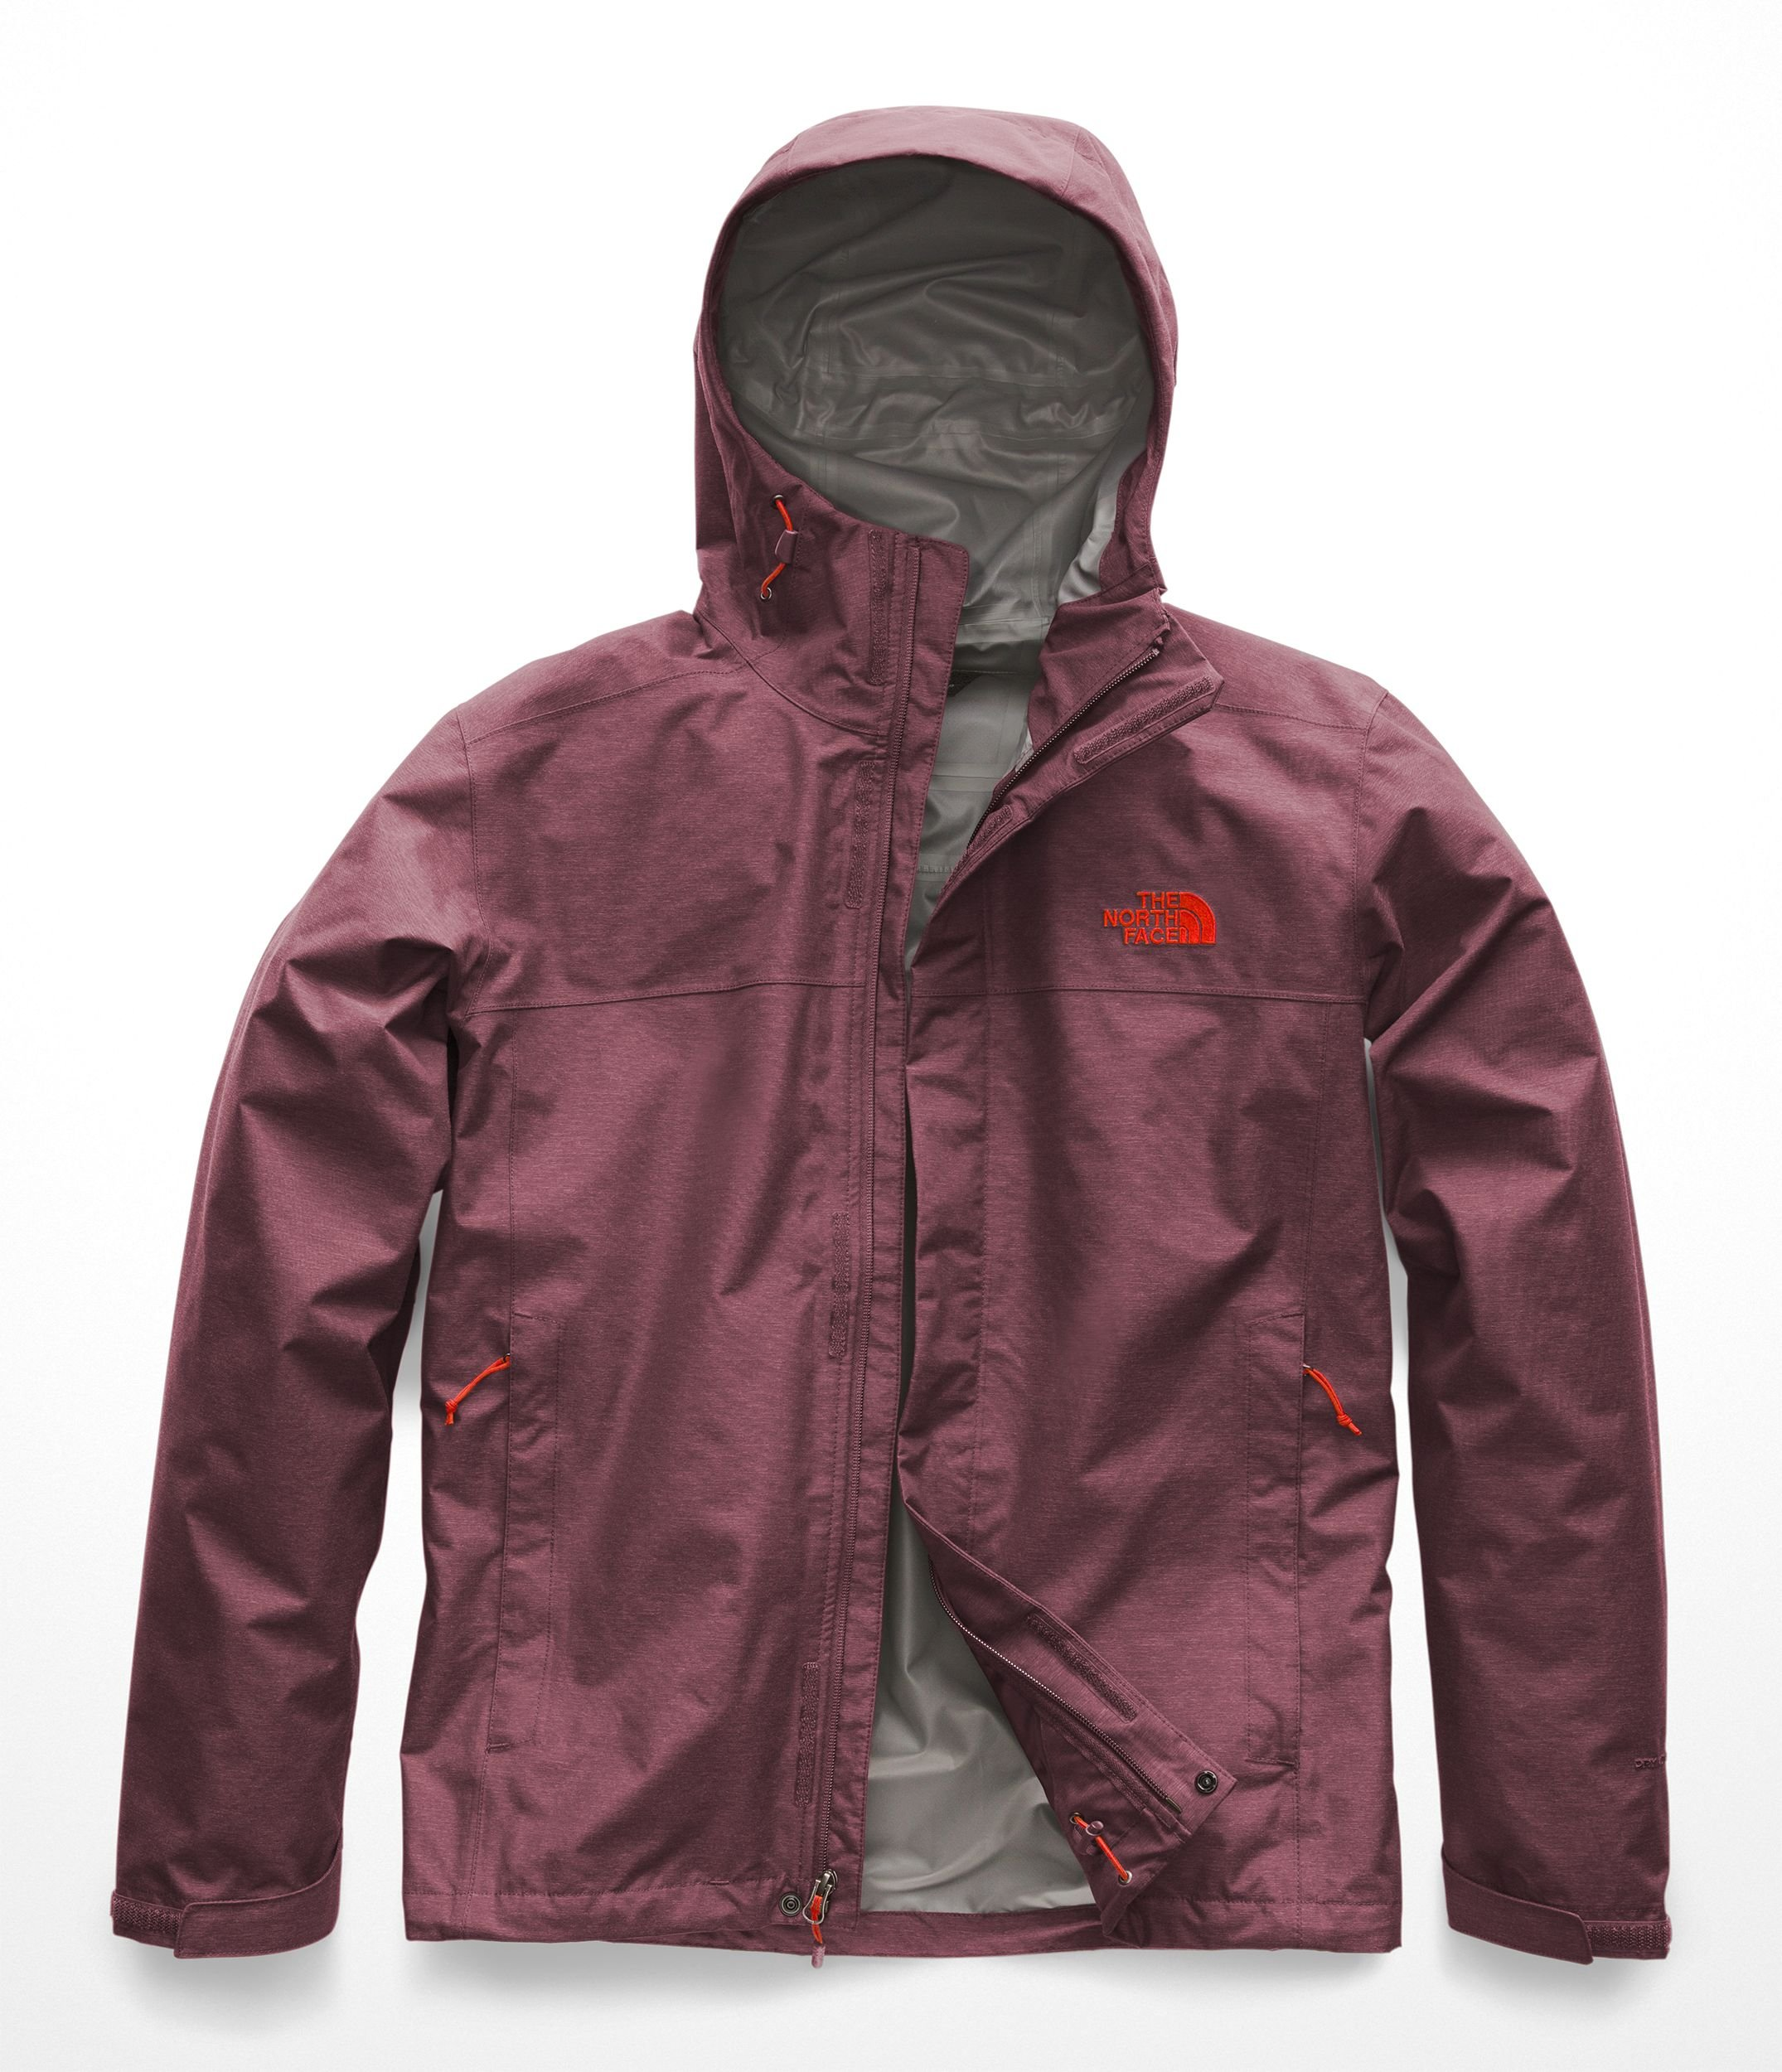 The North Face Men's Venture 2 Jacket - Fig Heather & Fig Heather - XL